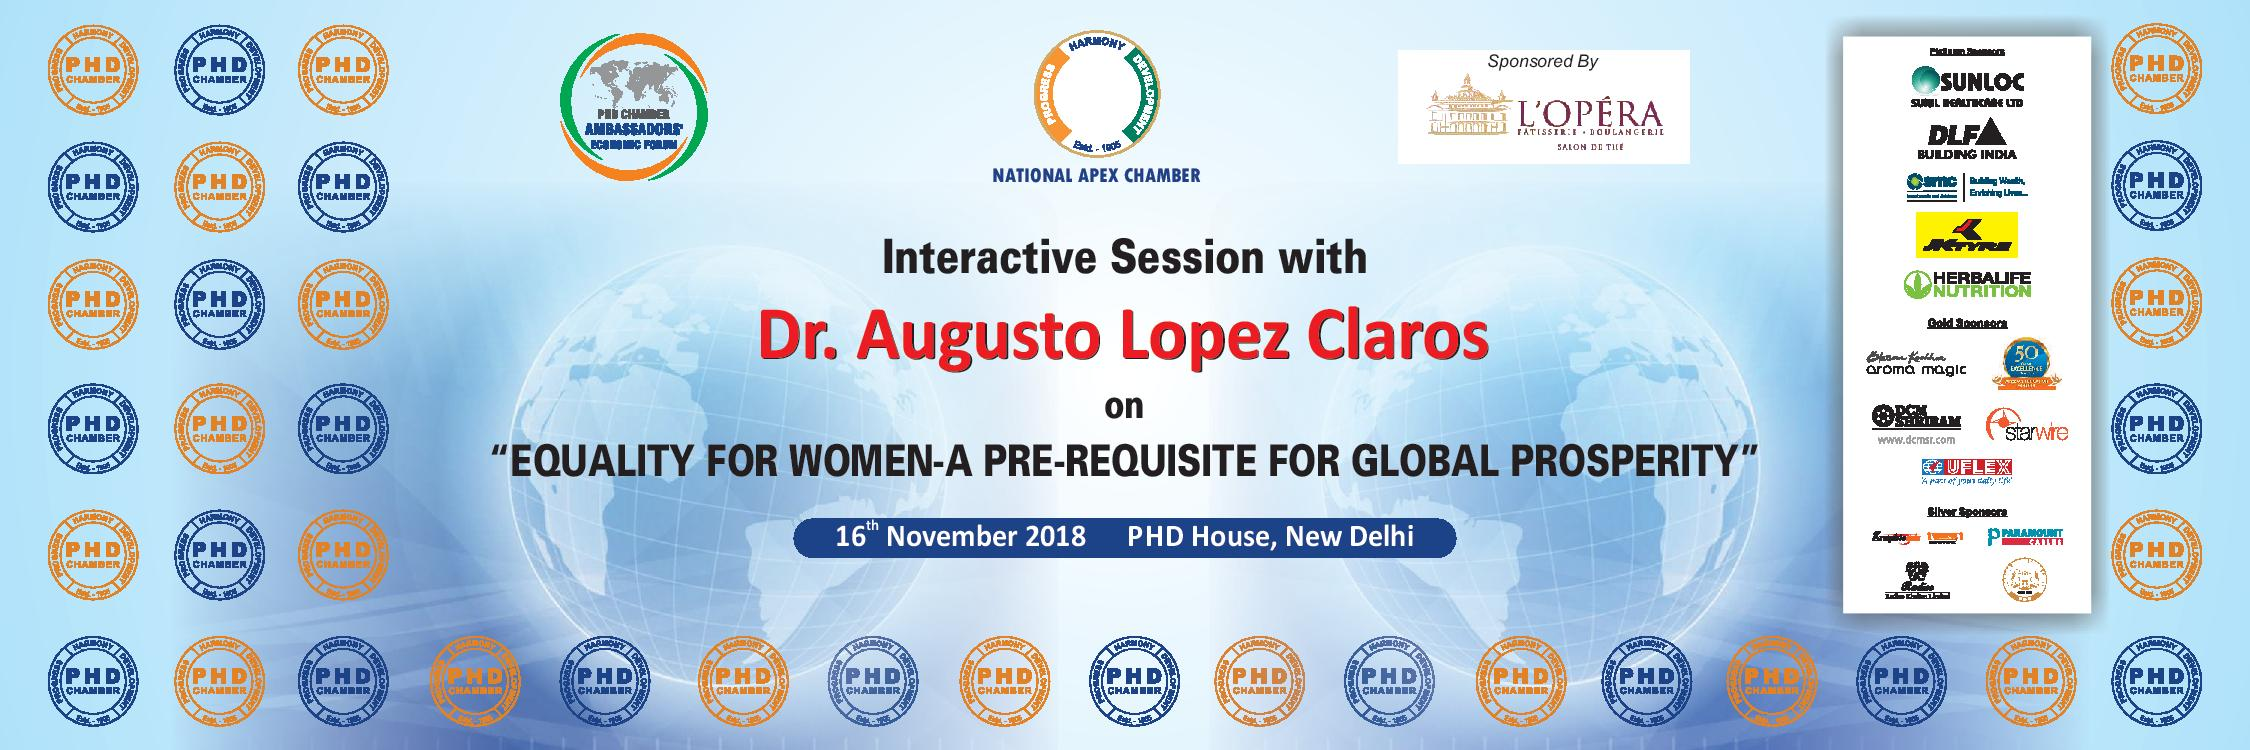 "Interactive Session with Dr. Augusto Lopez Claros on ""Equality for Women–A Pre-Requisite for Global Prosperity"""